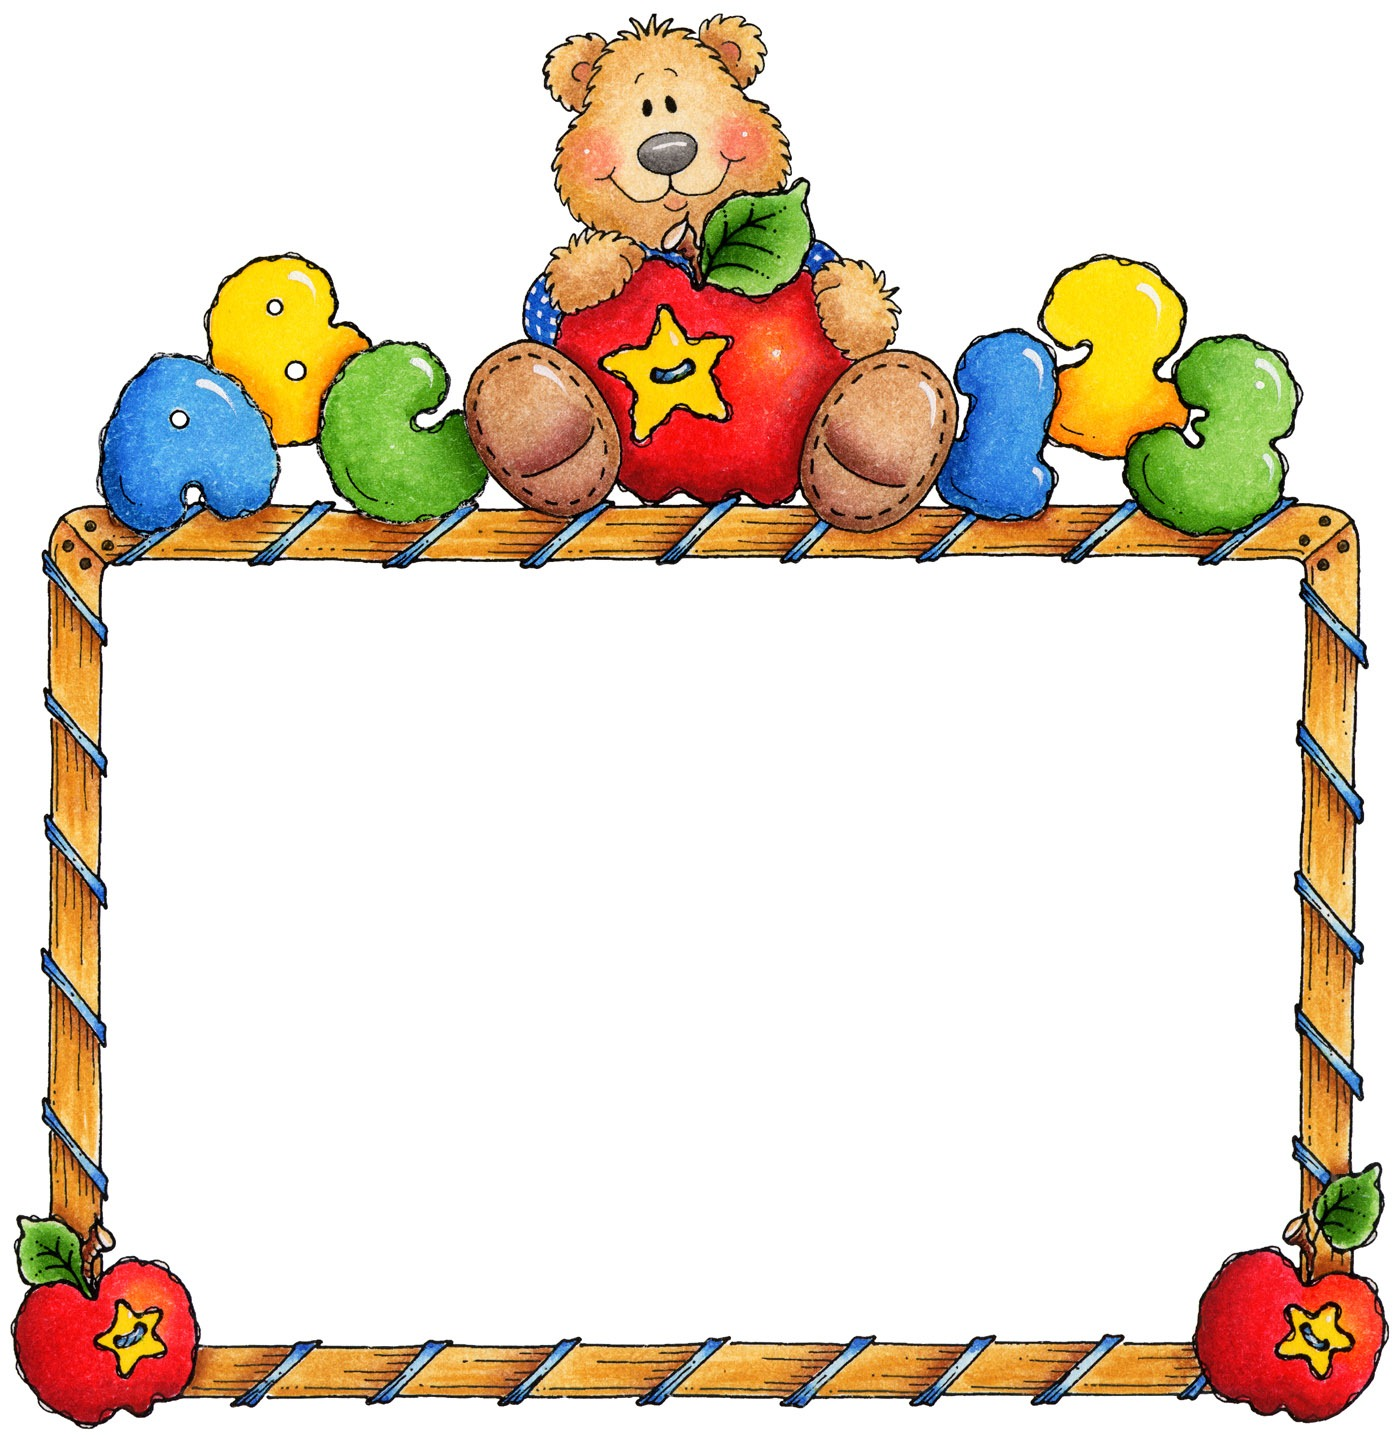 Preschool Border Clipart | Free download on ClipArtMag